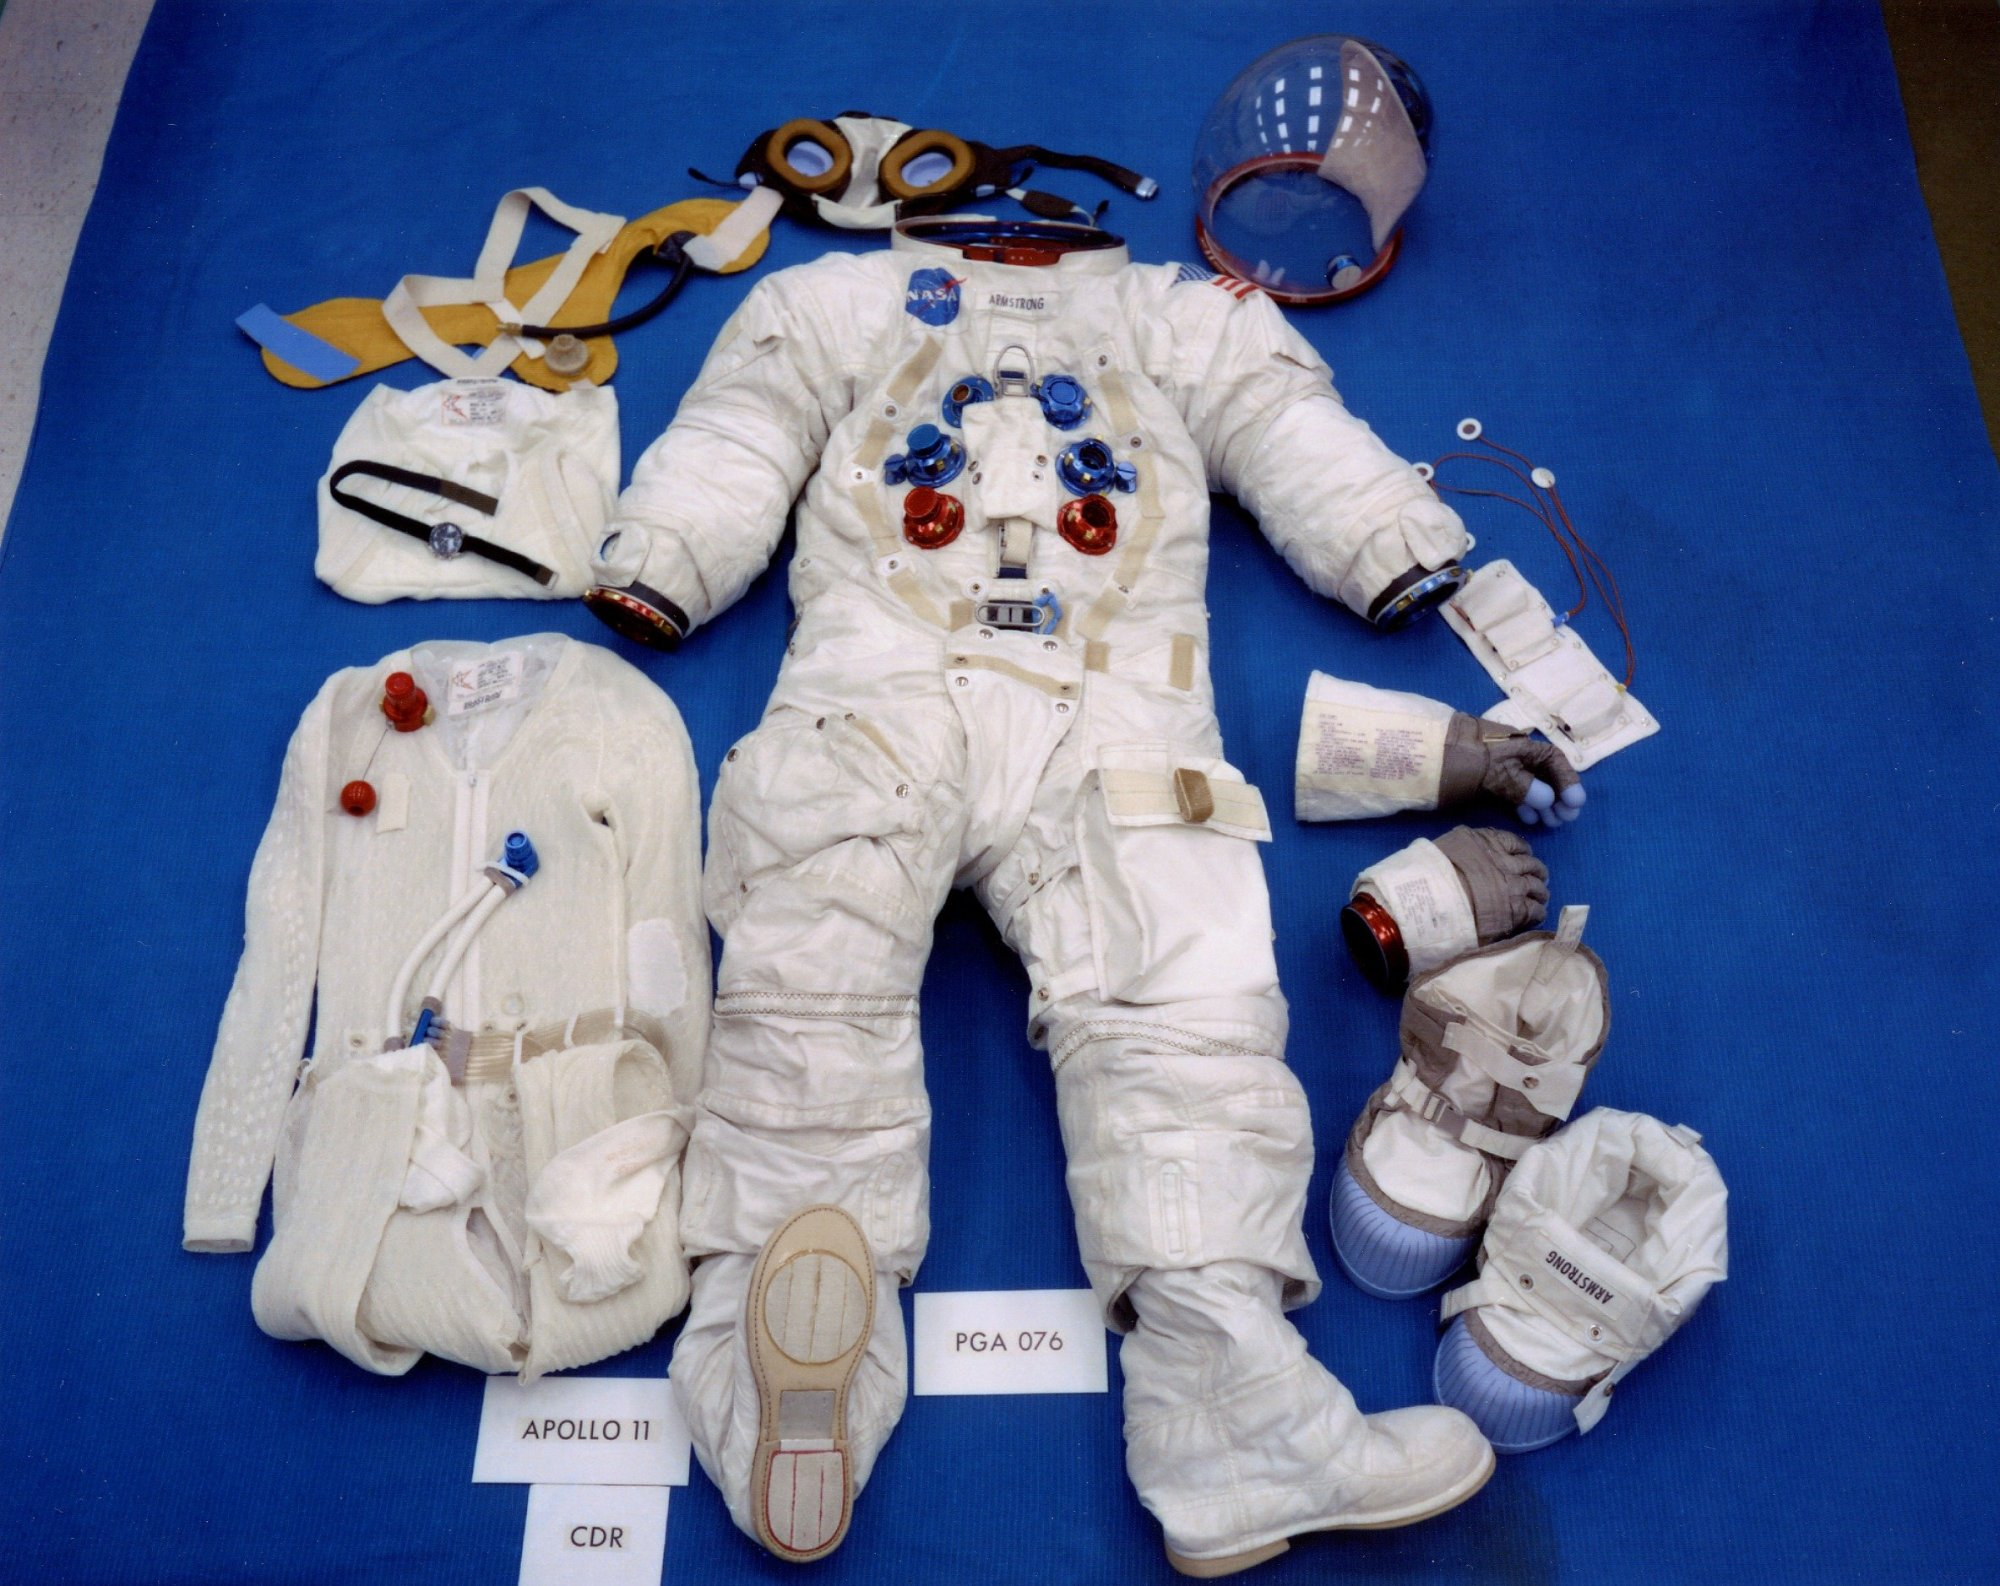 hight resolution of apollo skylab a7l wikipedia diagram of a gemini space suit hd